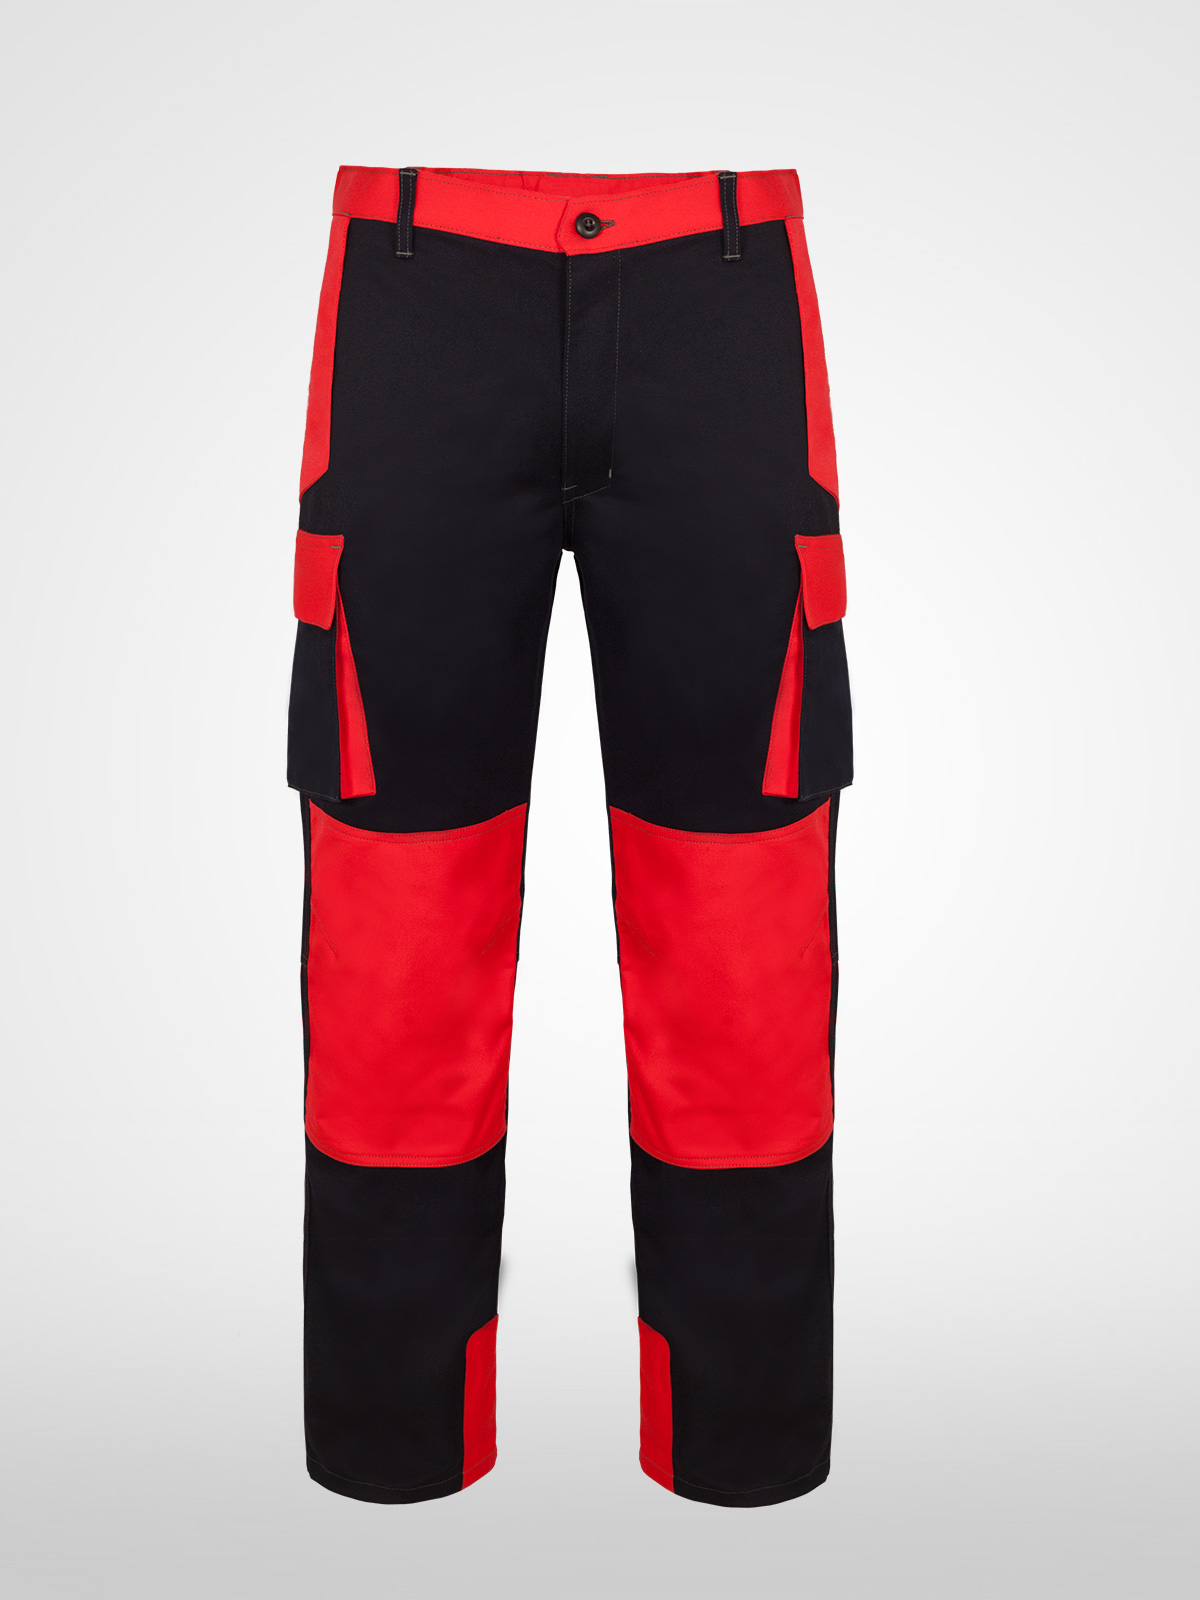 39dc2584e29a FR Trousers   Pants - Manufacturer   Supplier of Flame Resistant ...